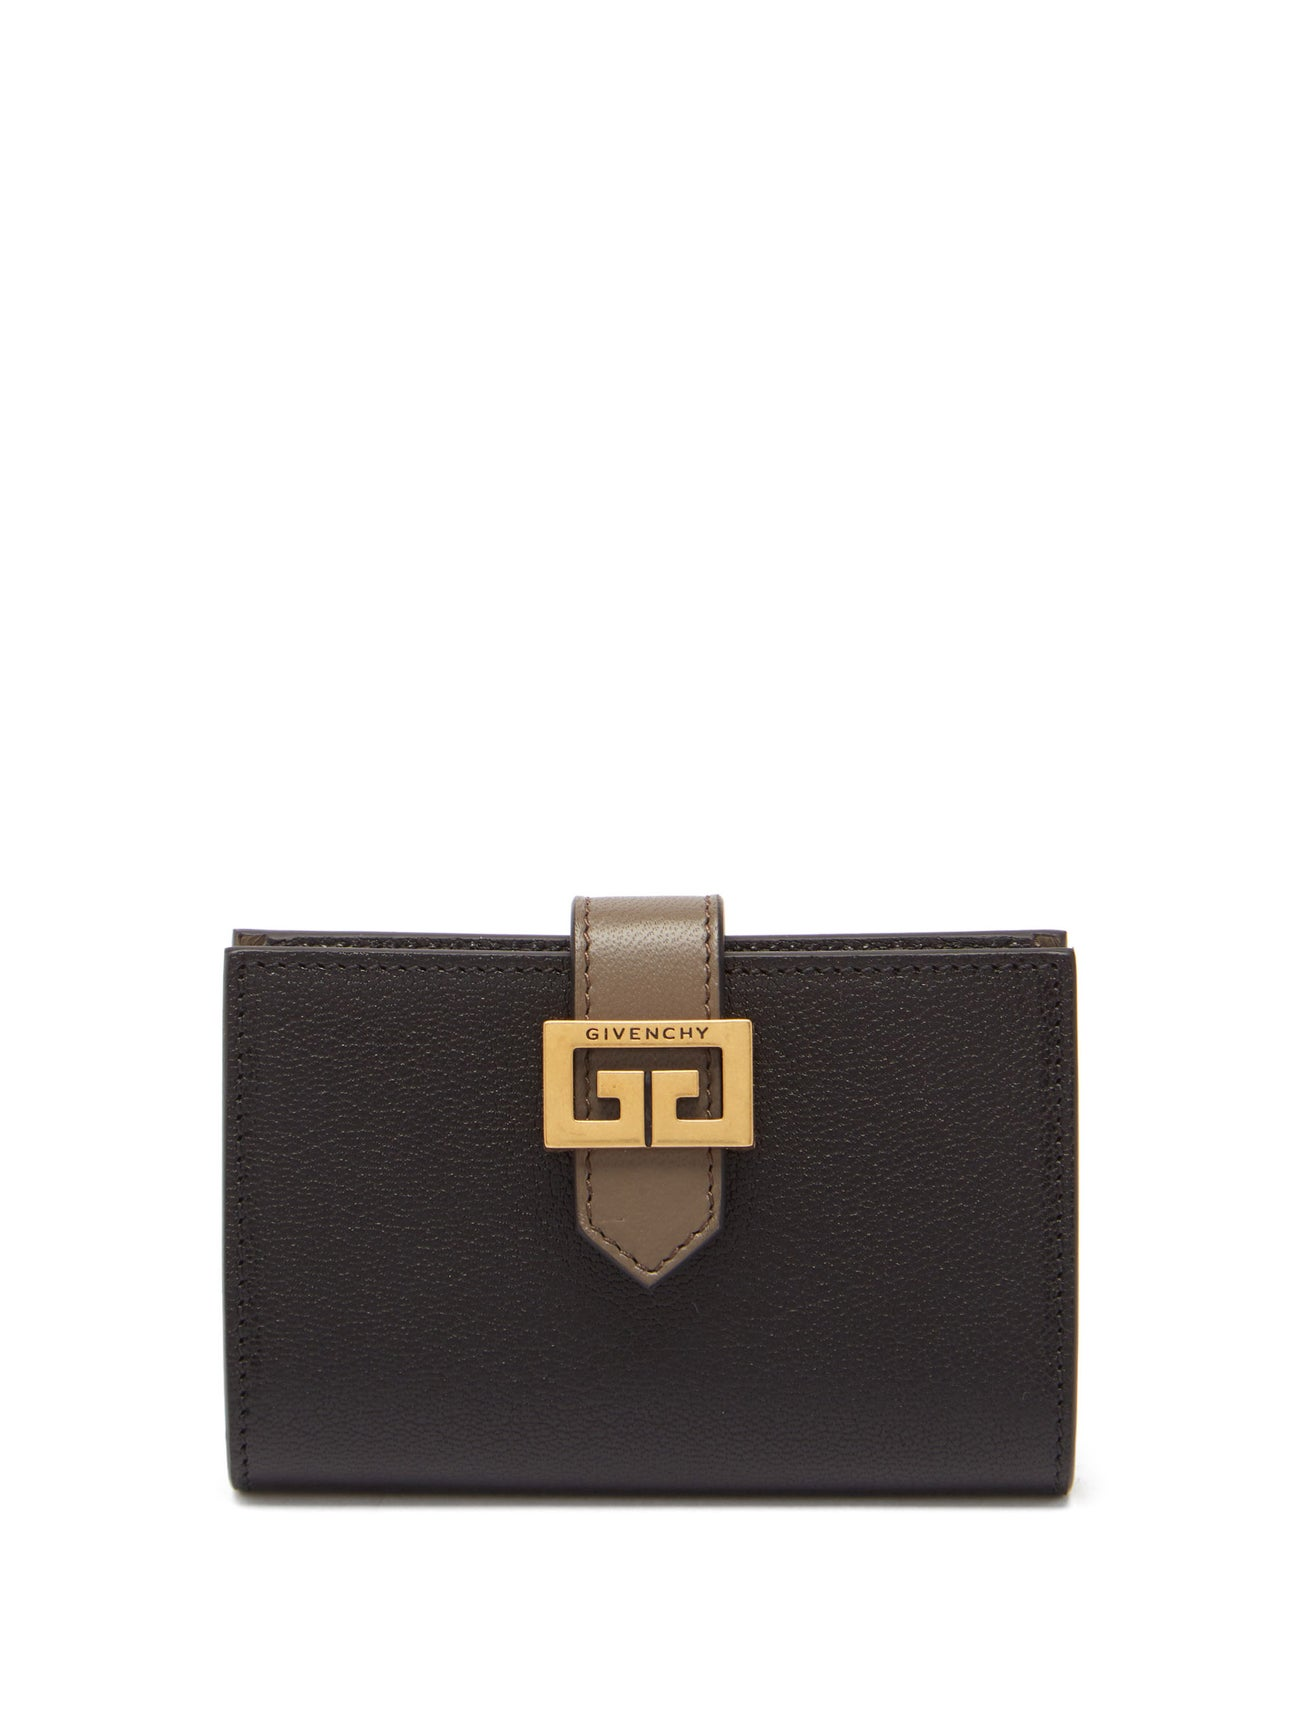 Givenchy GV3 Leather Wallet 537лв